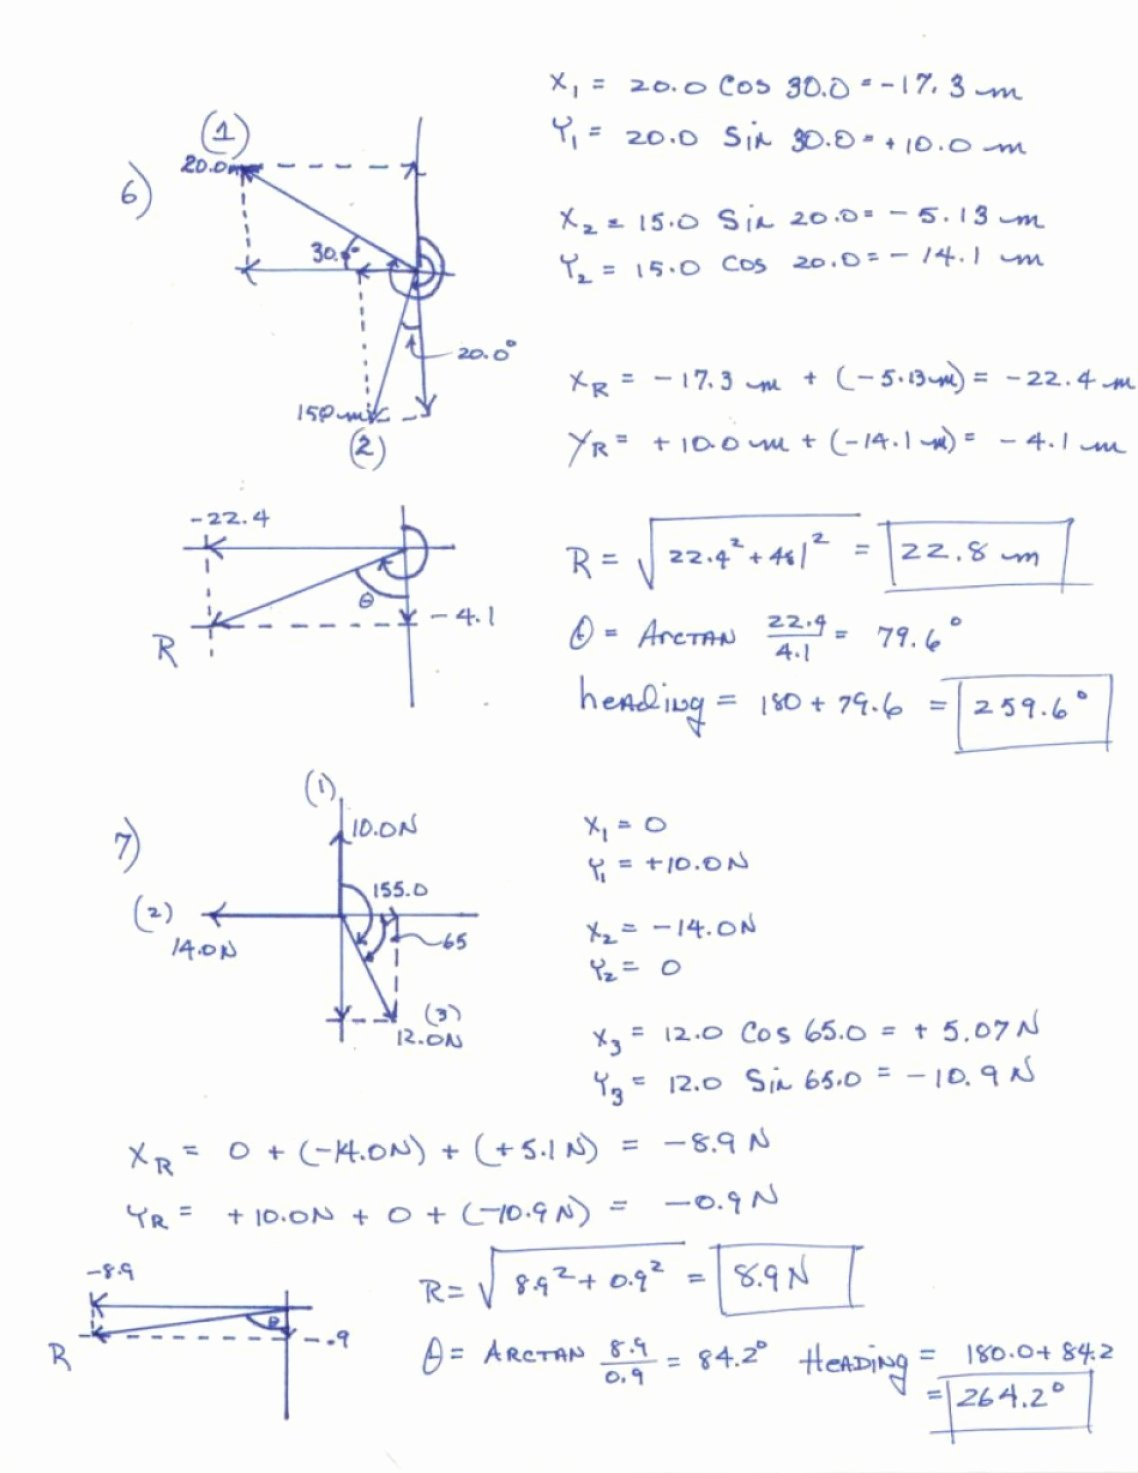 Vector Addition Worksheet with Answers Luxury Resultant Vectors Worksheets Answers